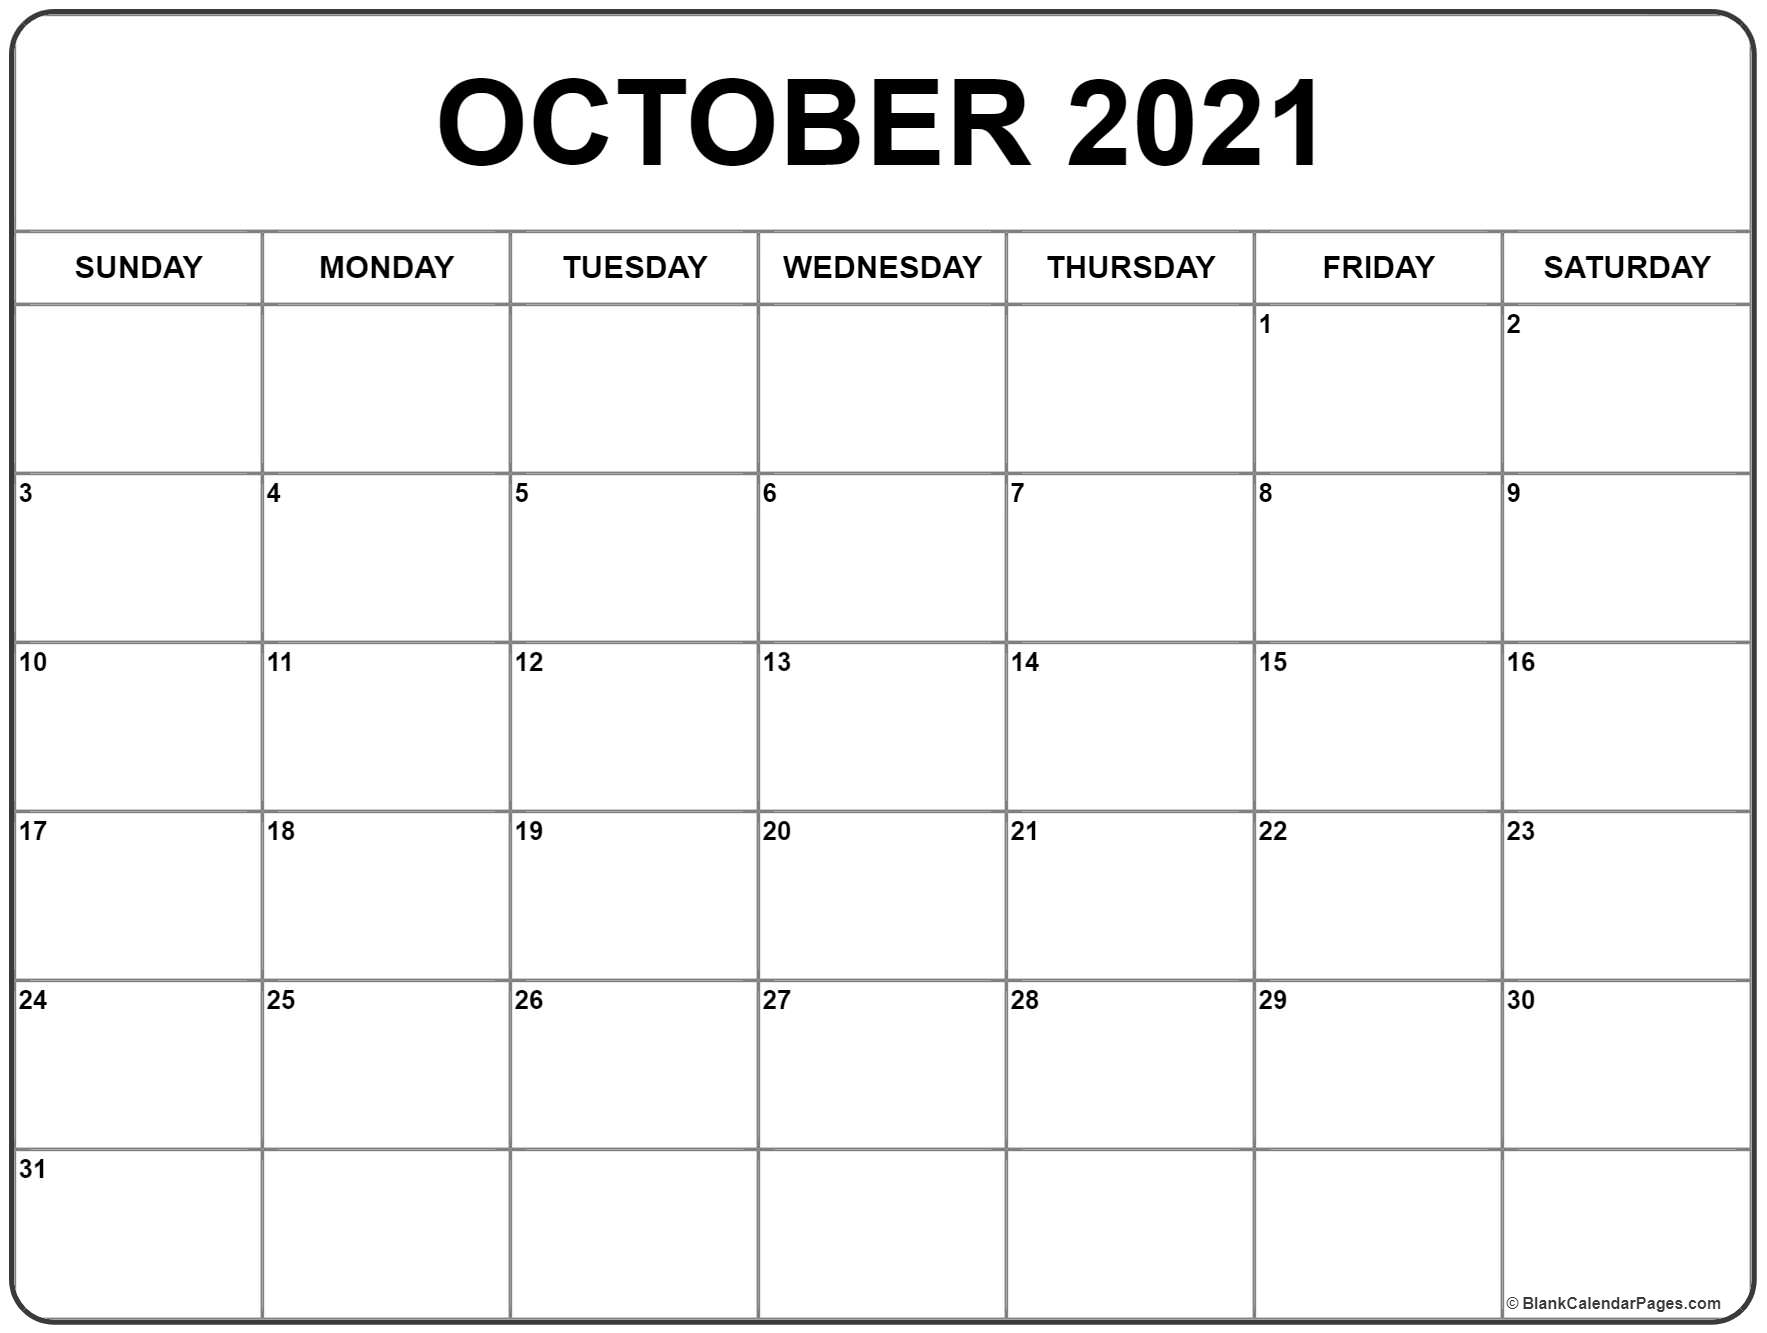 August September October 2020 Calendar October 2020 calendar | free printable monthly calendars